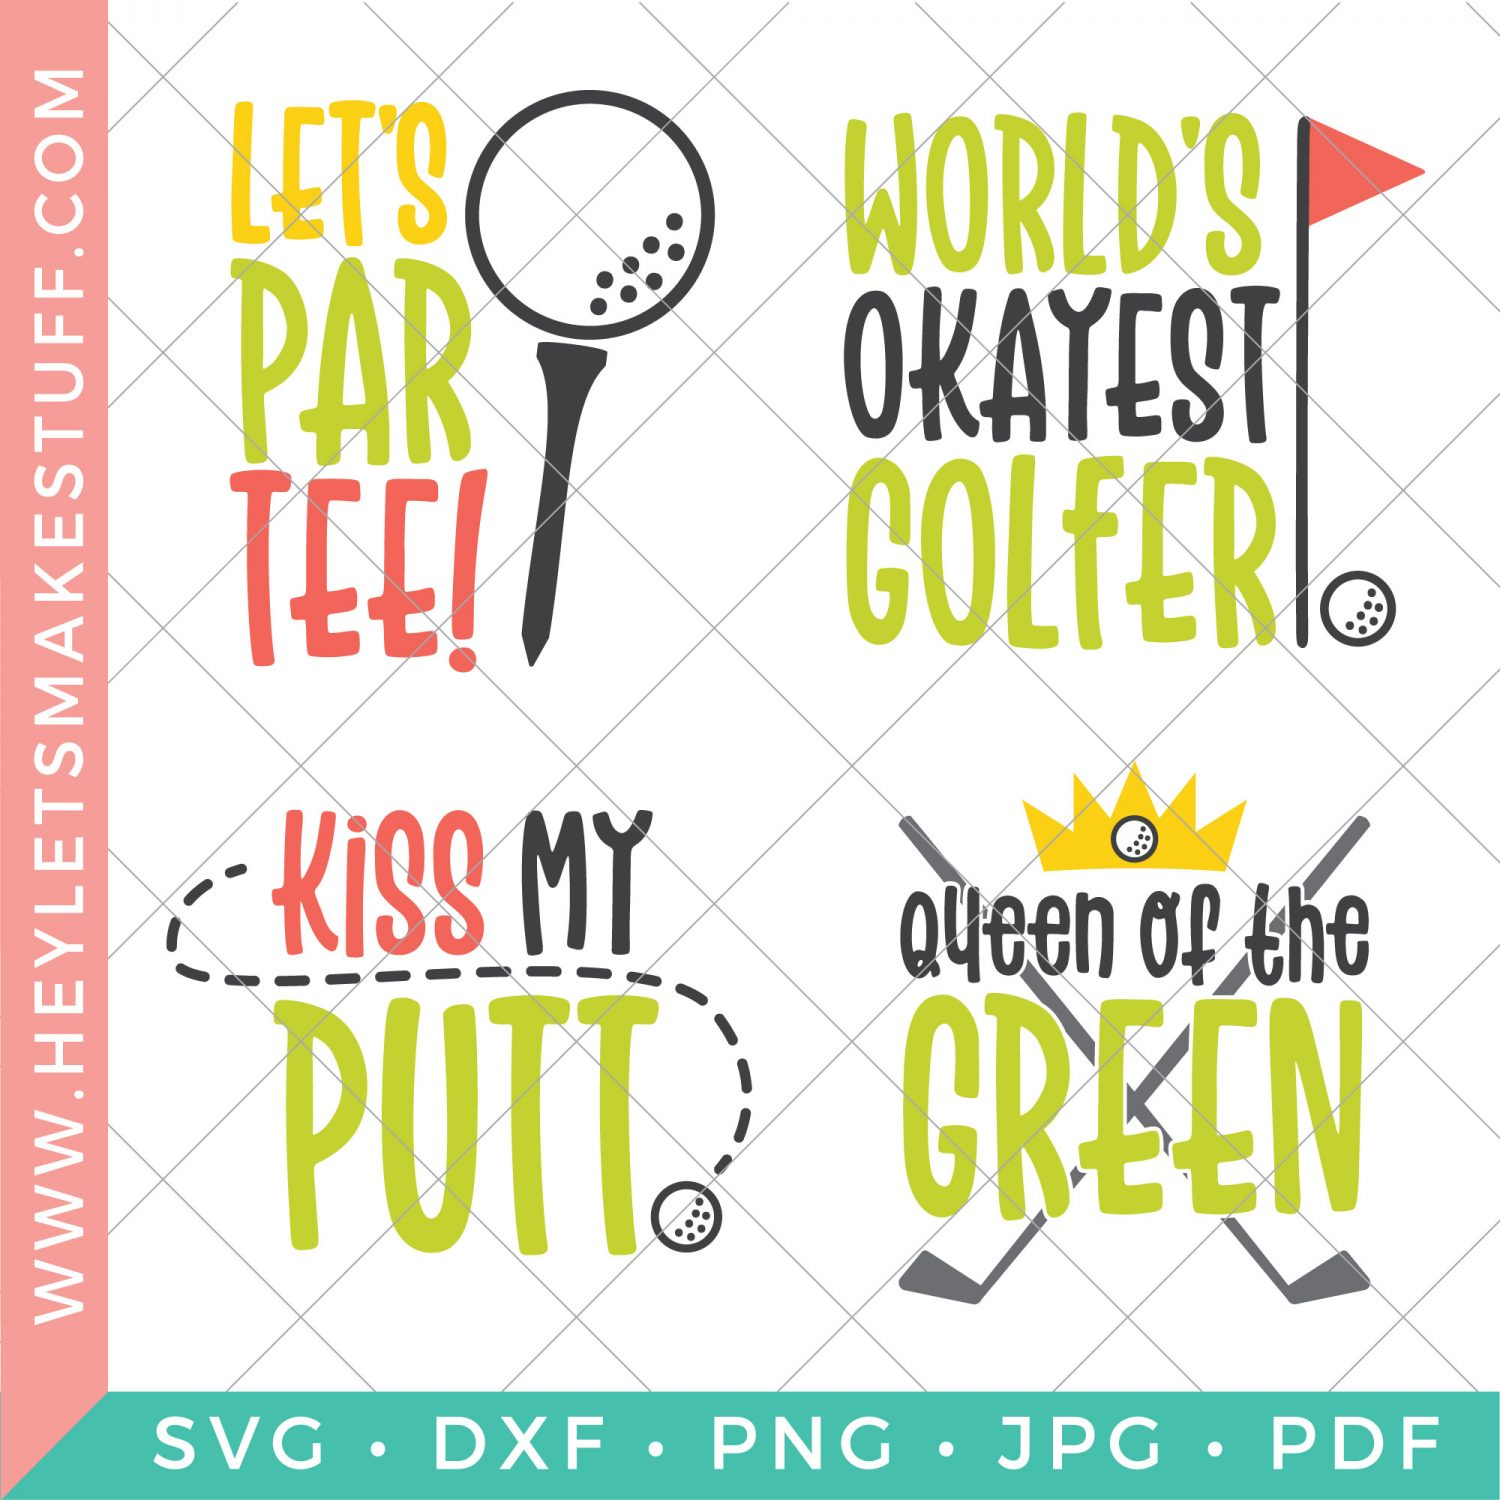 Four files in the funny golf SVG bundle